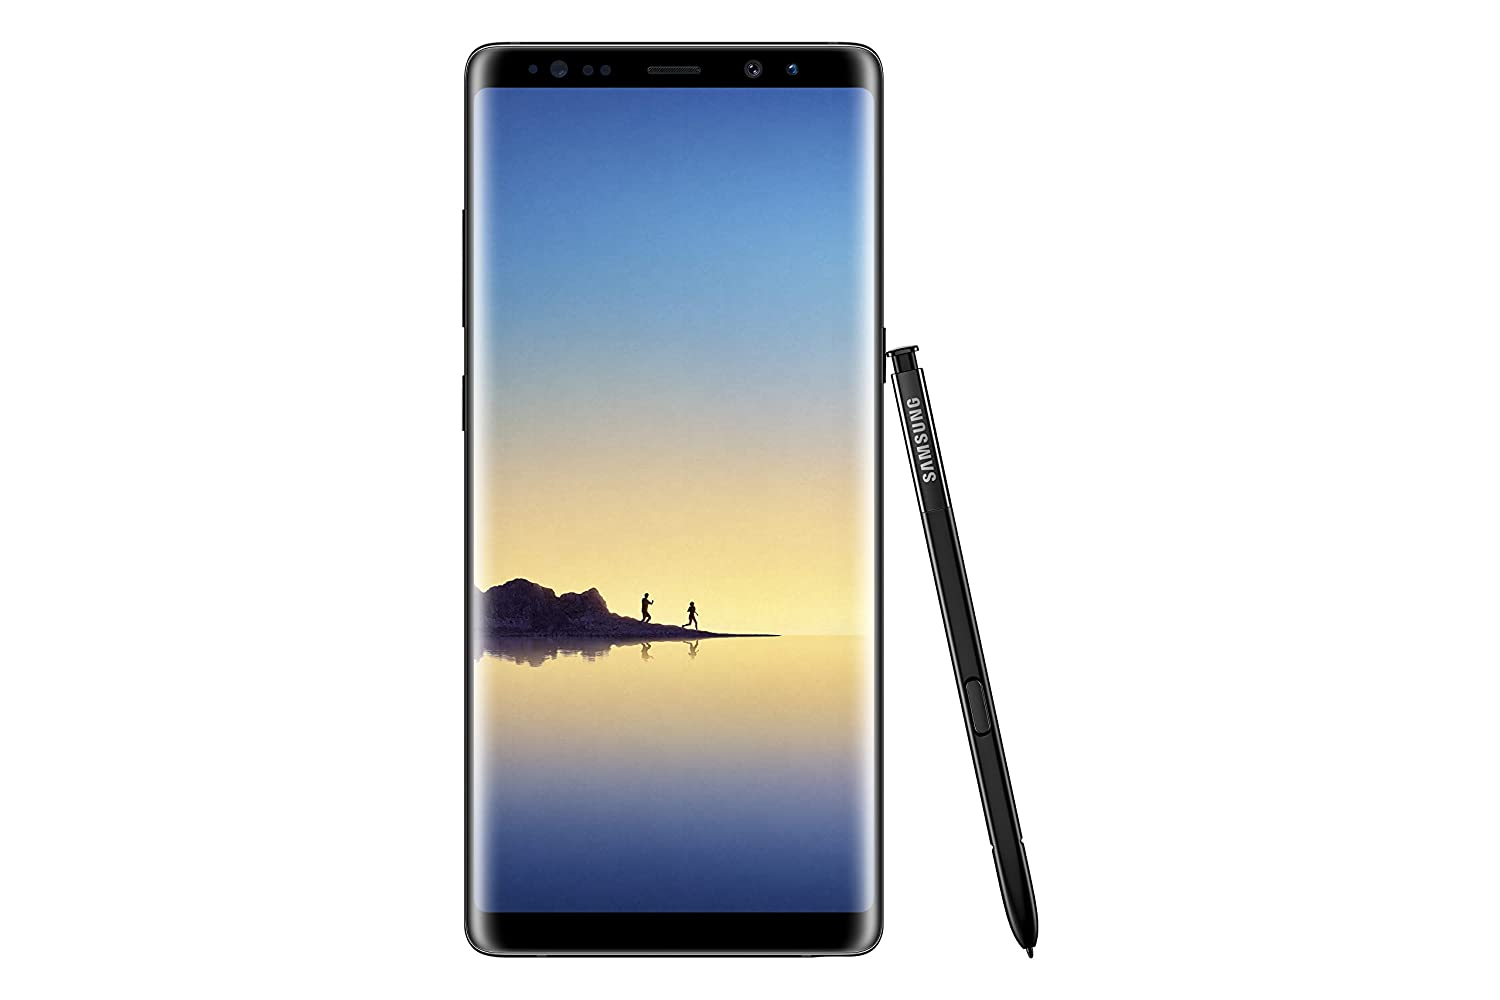 Samsung Galaxy Note 8 Sm N950f Ds Factory Unlocked Phone Details About 1 Lb Scrap Cell Circuit Boards Gold Recovery Ii 63 Screen 64gb International Version No Warranty Midnight Black